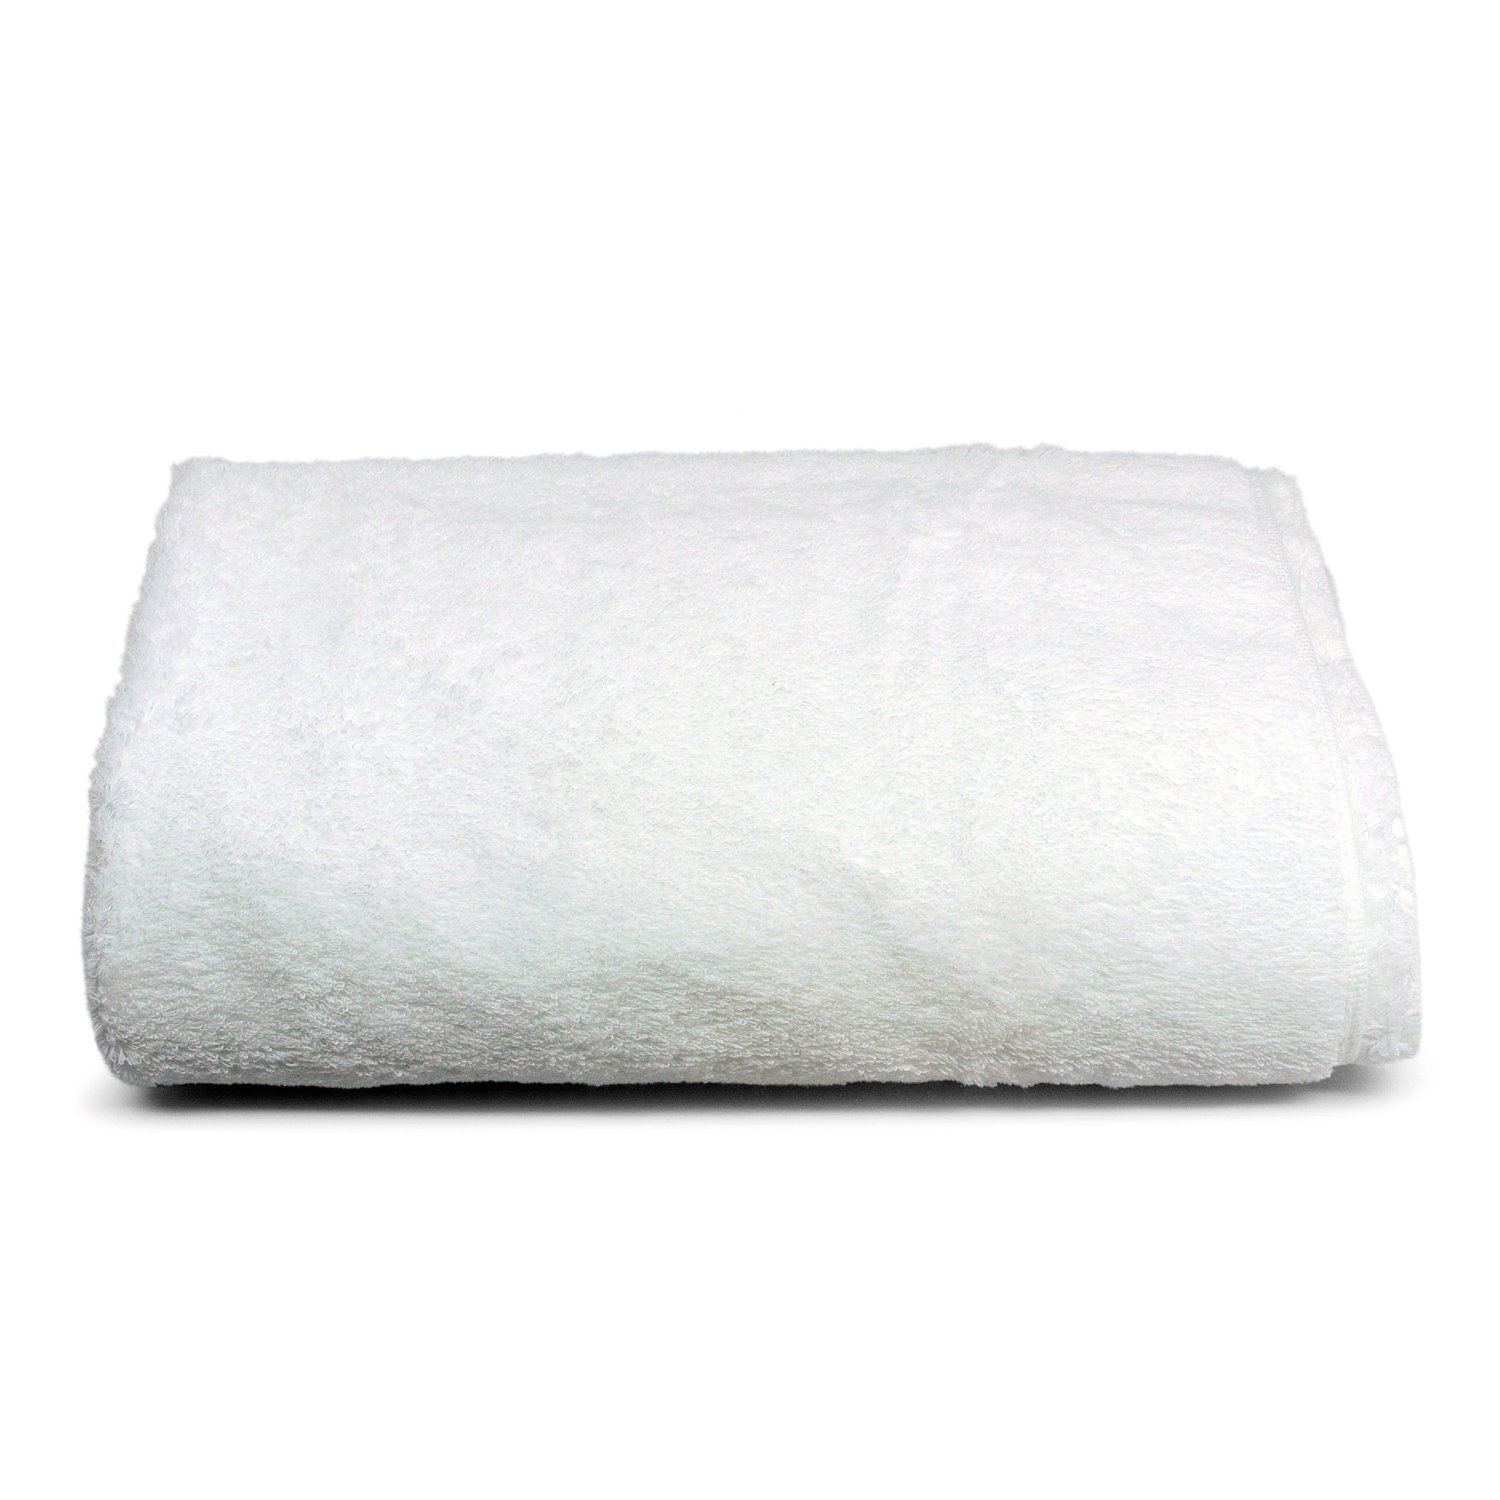 Winter Park - Luxury White Bath Towels Egyptian Cotton